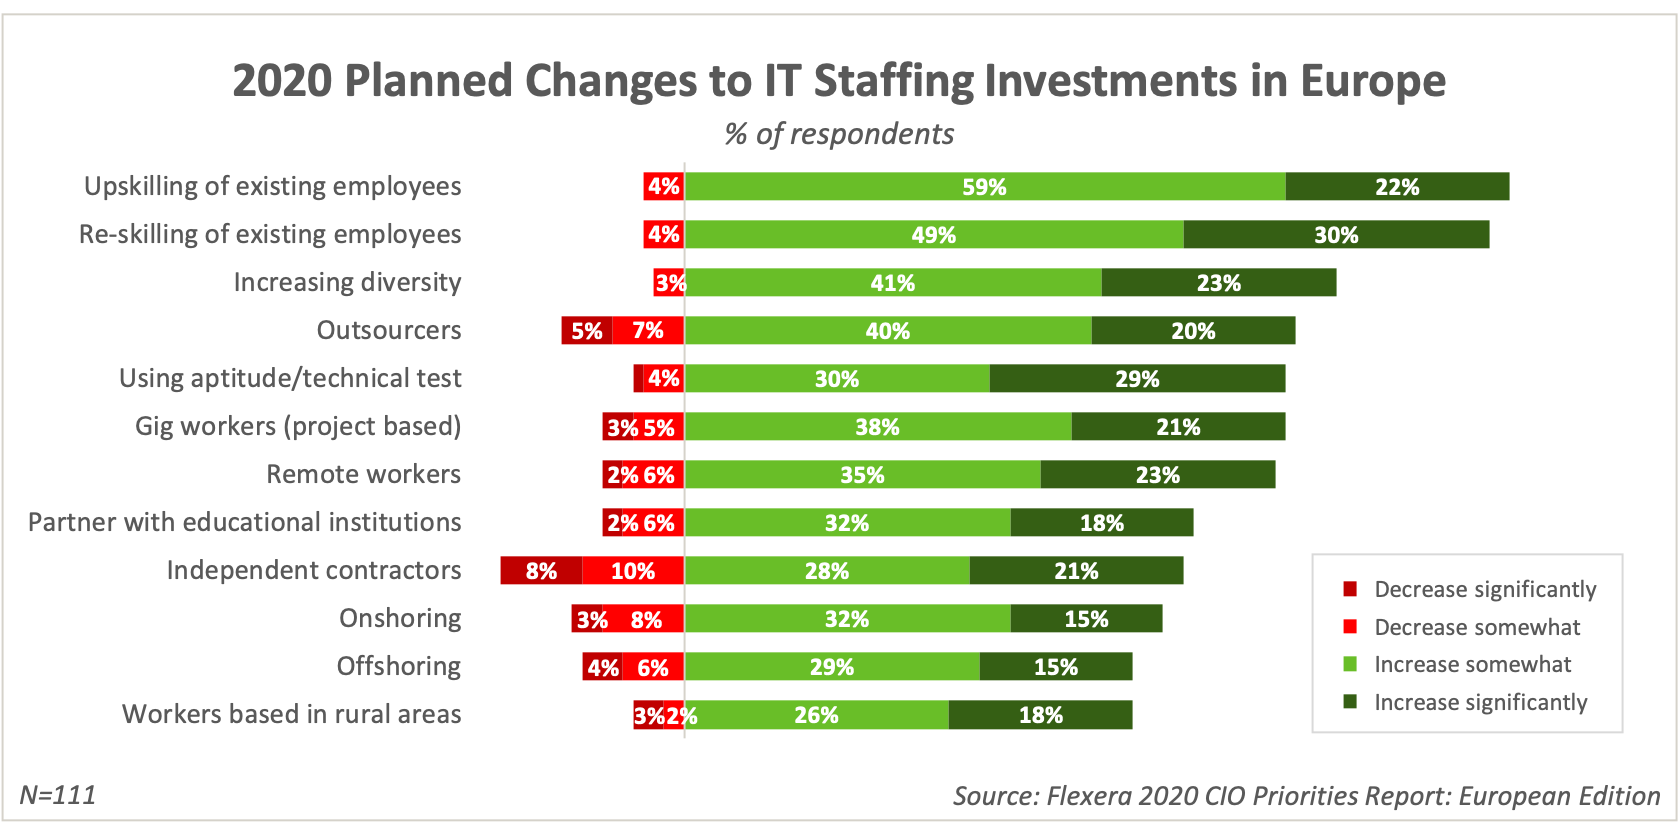 2020 Planned Changes to IT Staffing Investments in Europe